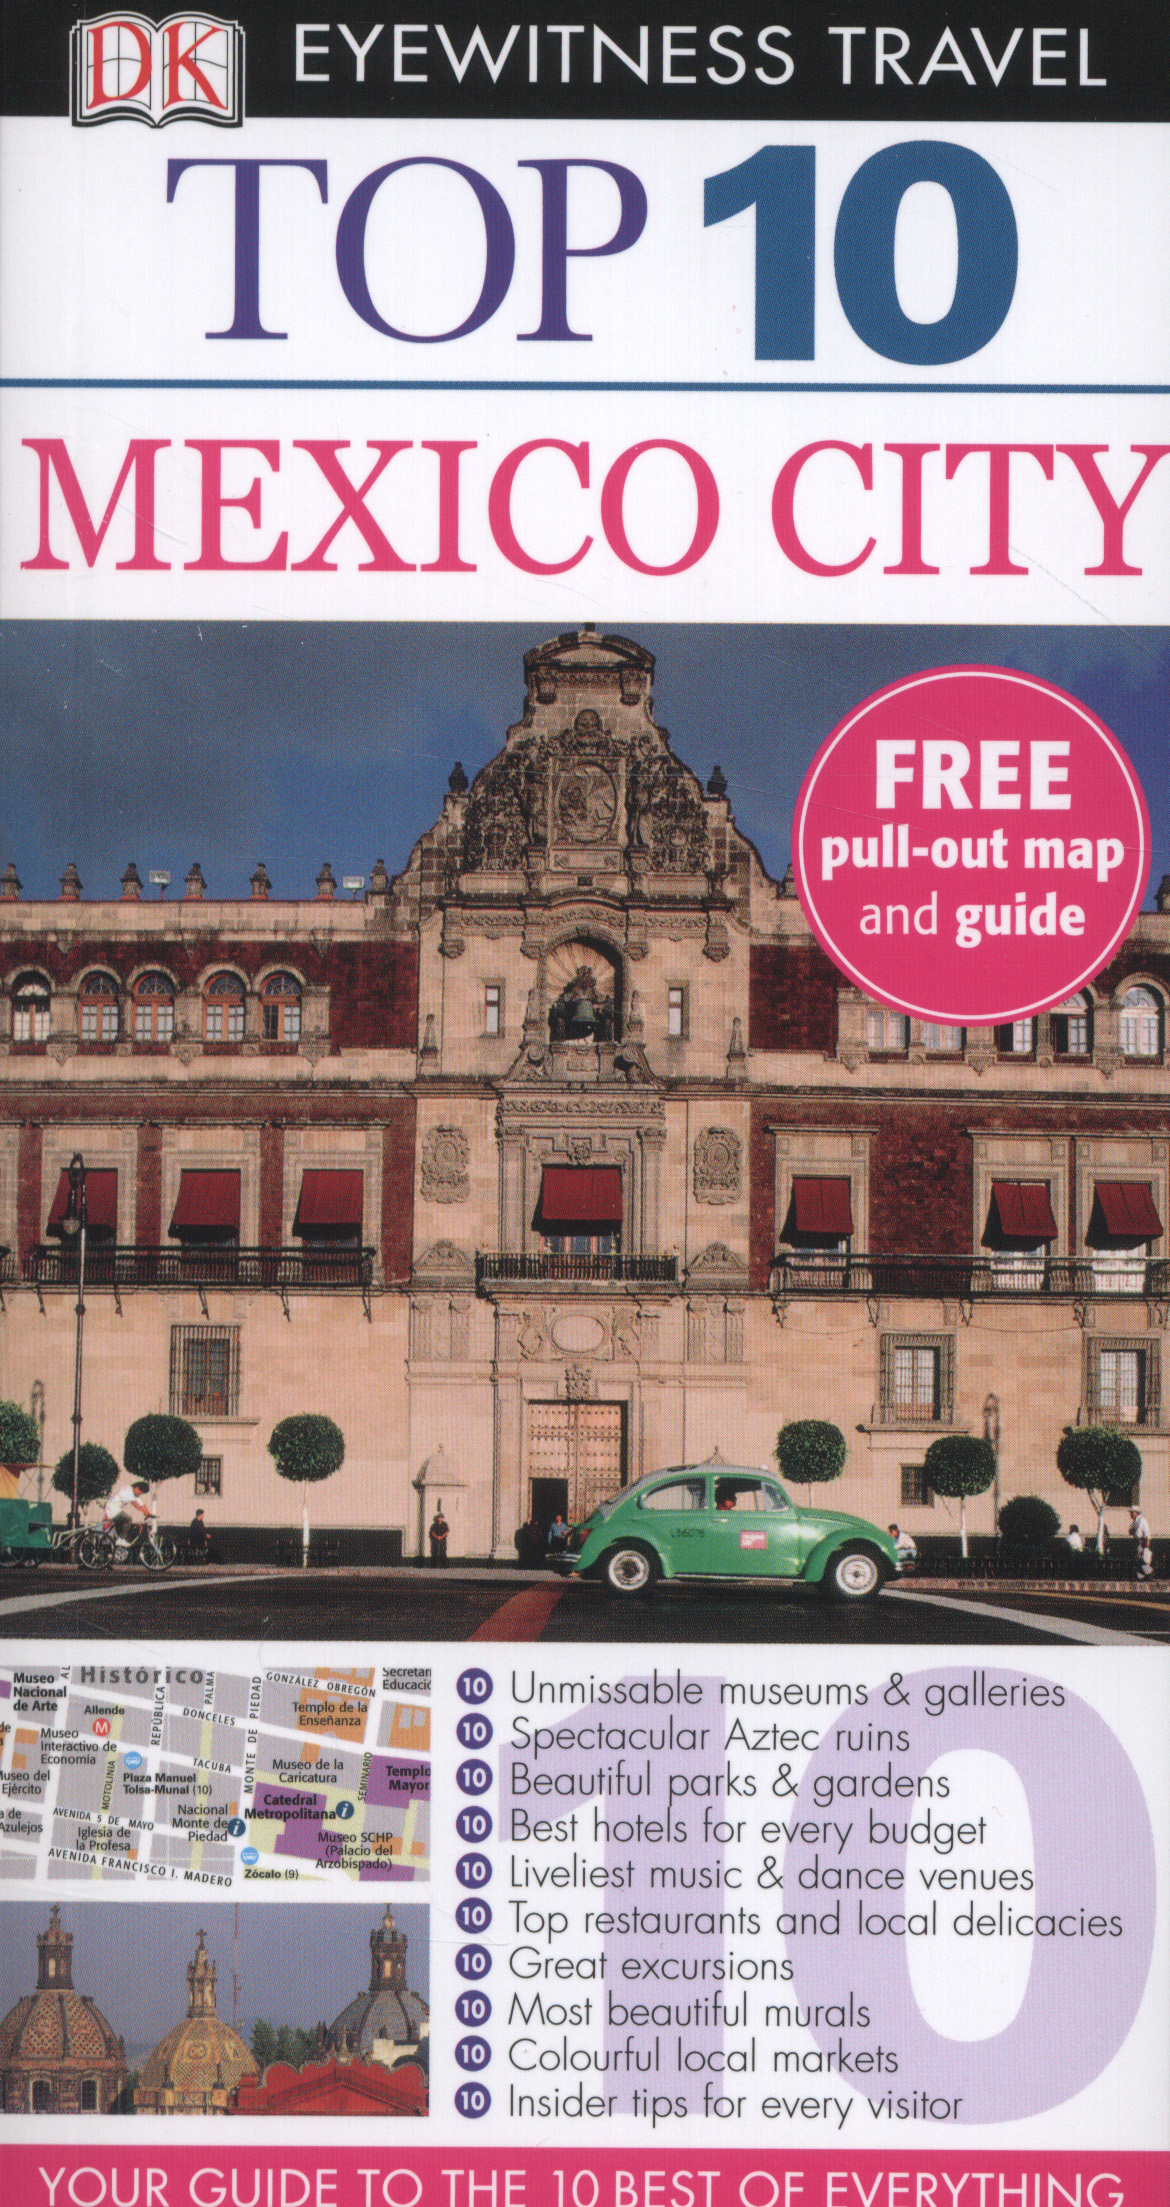 Reisgids Mexico City top 10   Eyewitness travel